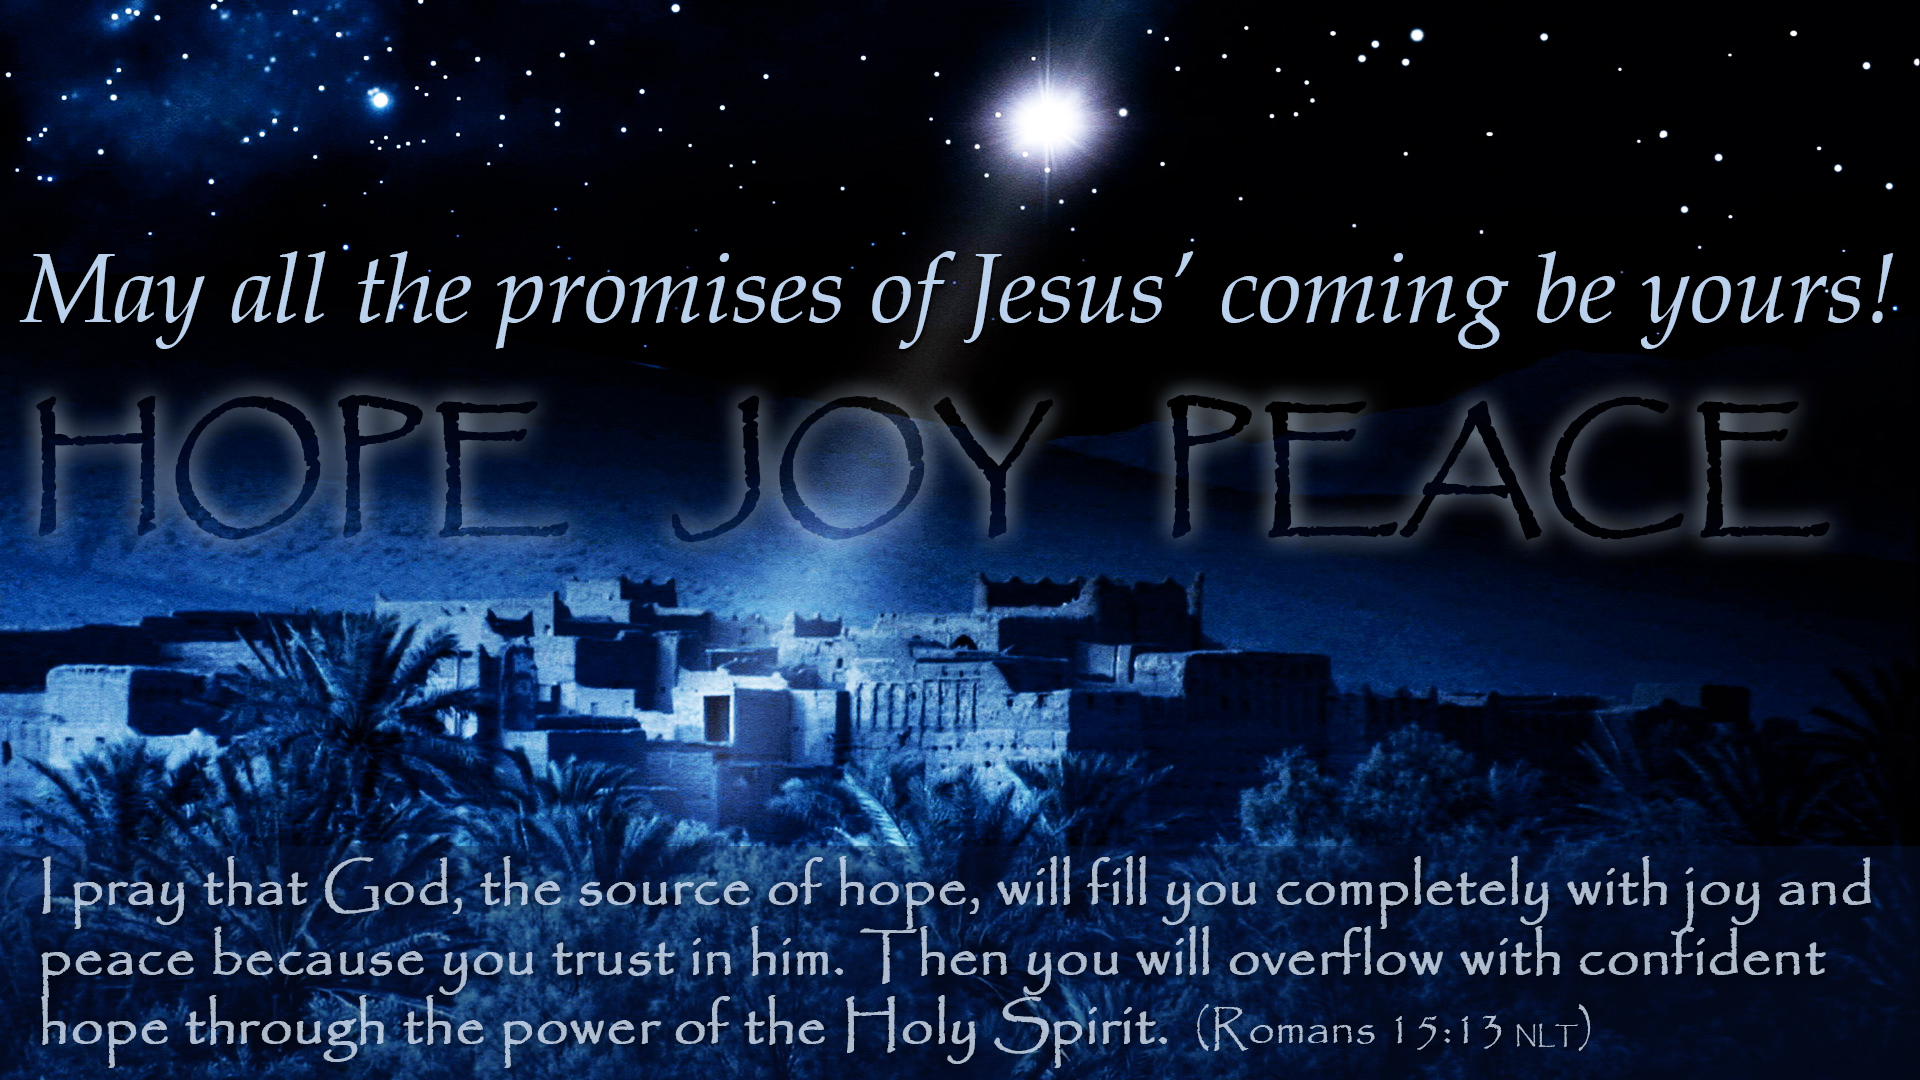 Merry Christmas 2016 May All The Promises Of Jesus